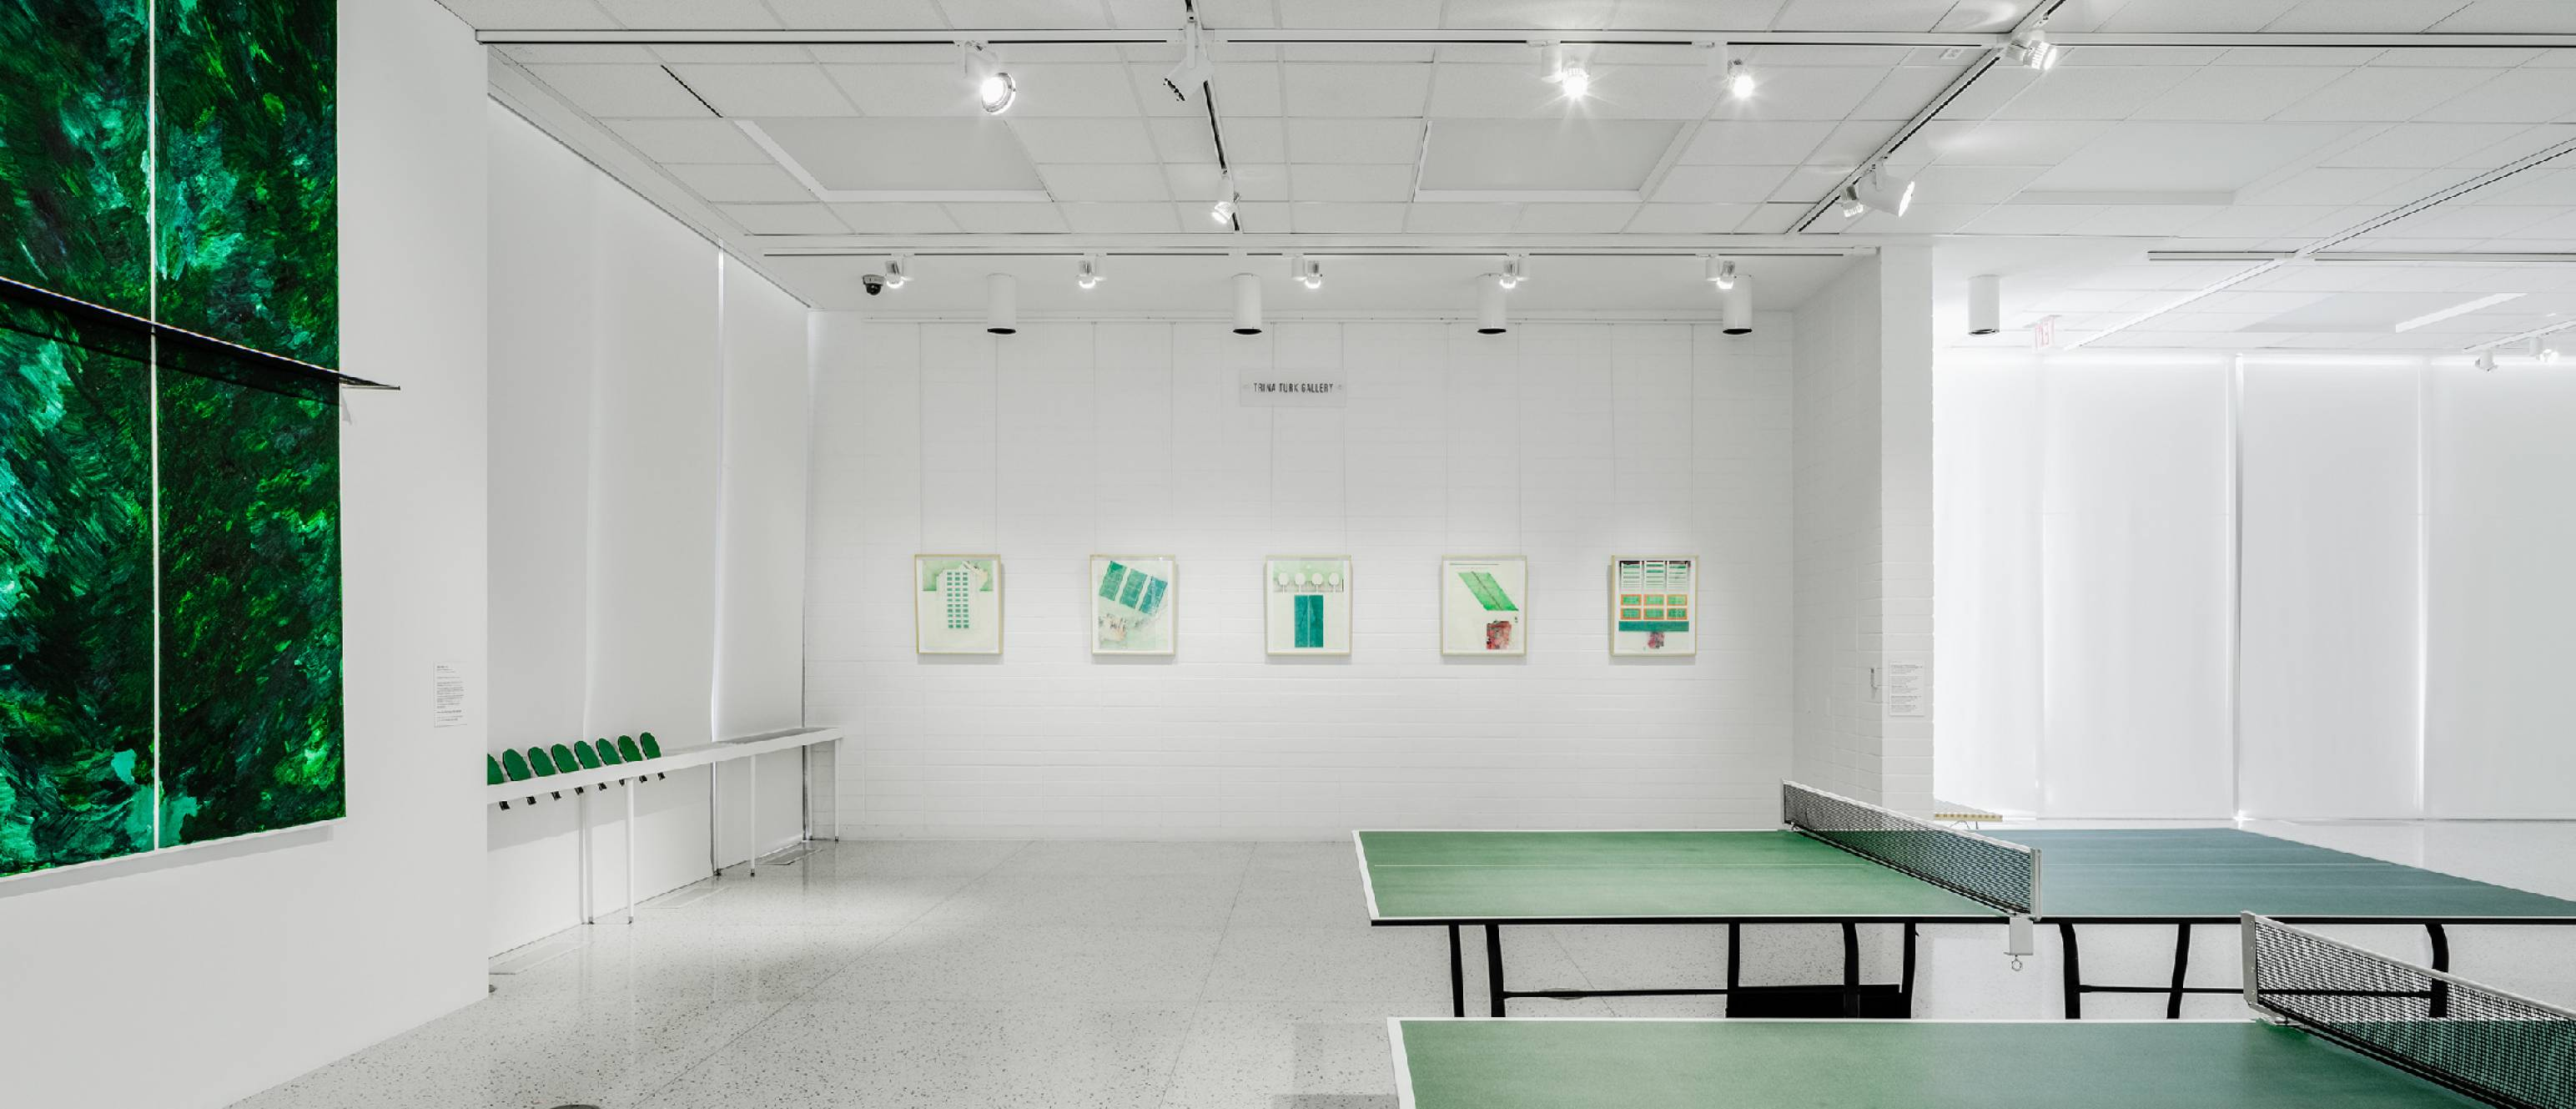 Ping pong tables, drawings and artworks in the gallery